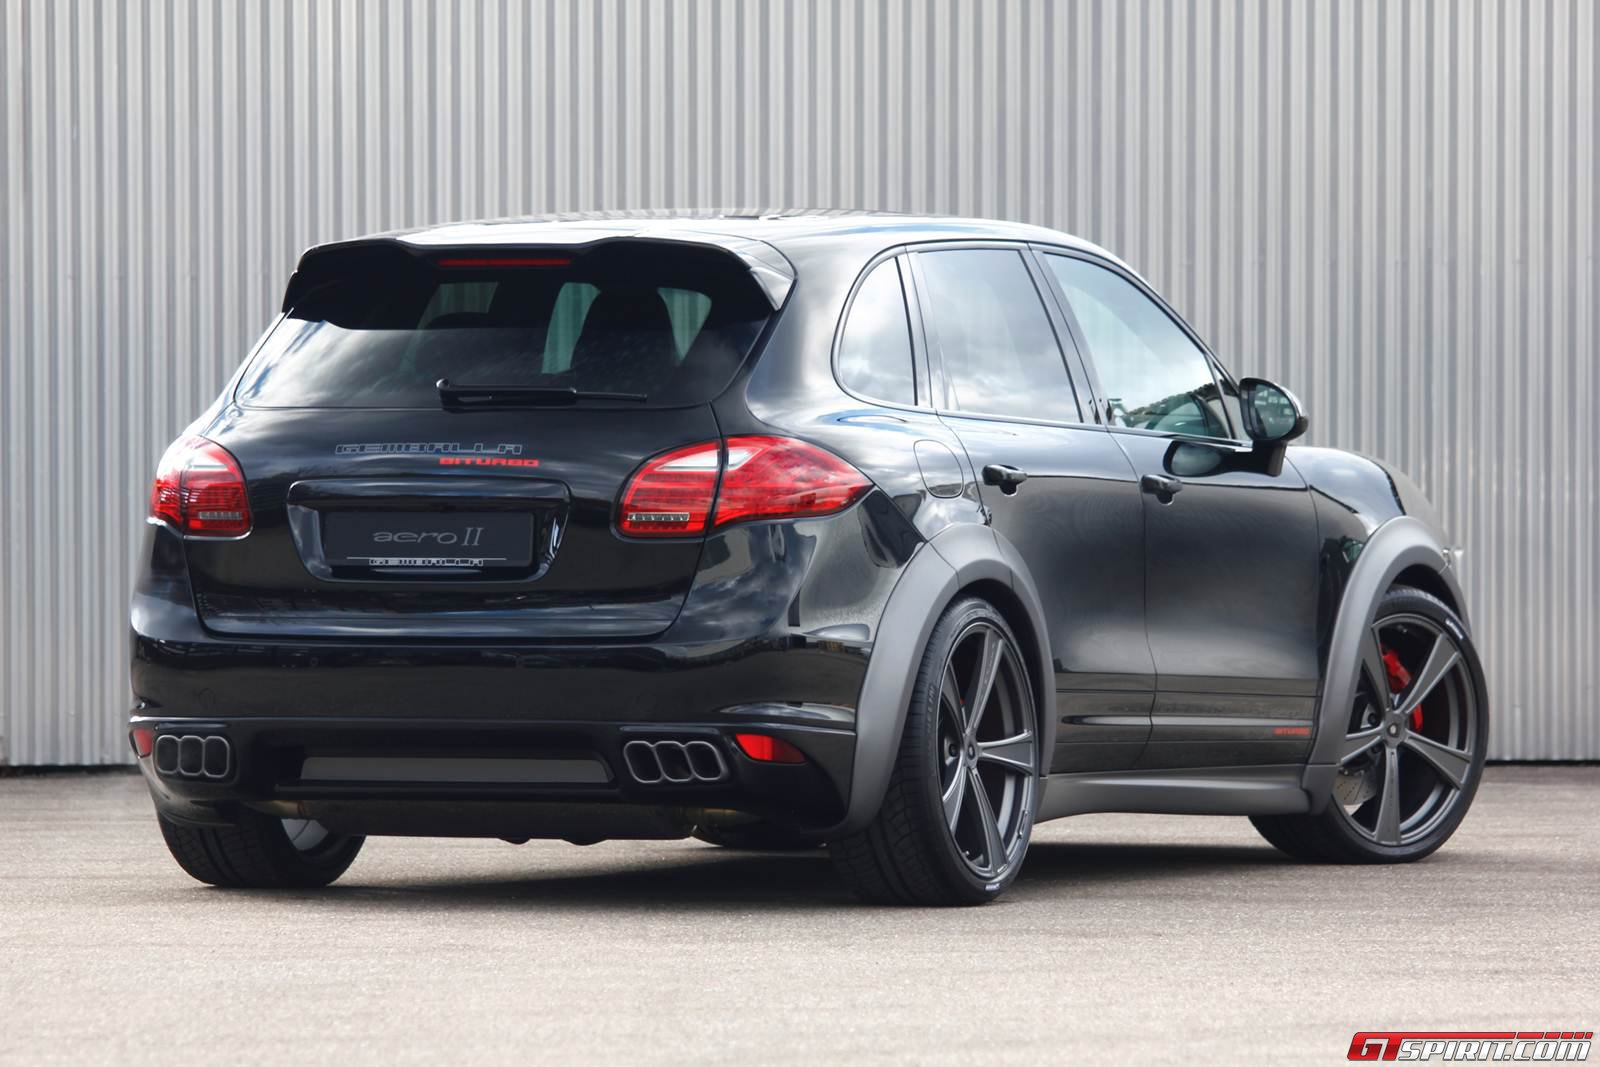 http://www.gtspirit.com/wp-content/gallery/official-gemballa-offers-variable-exhaust-system-for-porsche-cayenne/pr_gemballa_gmbh_g58_aero2_exterior_2.jpg